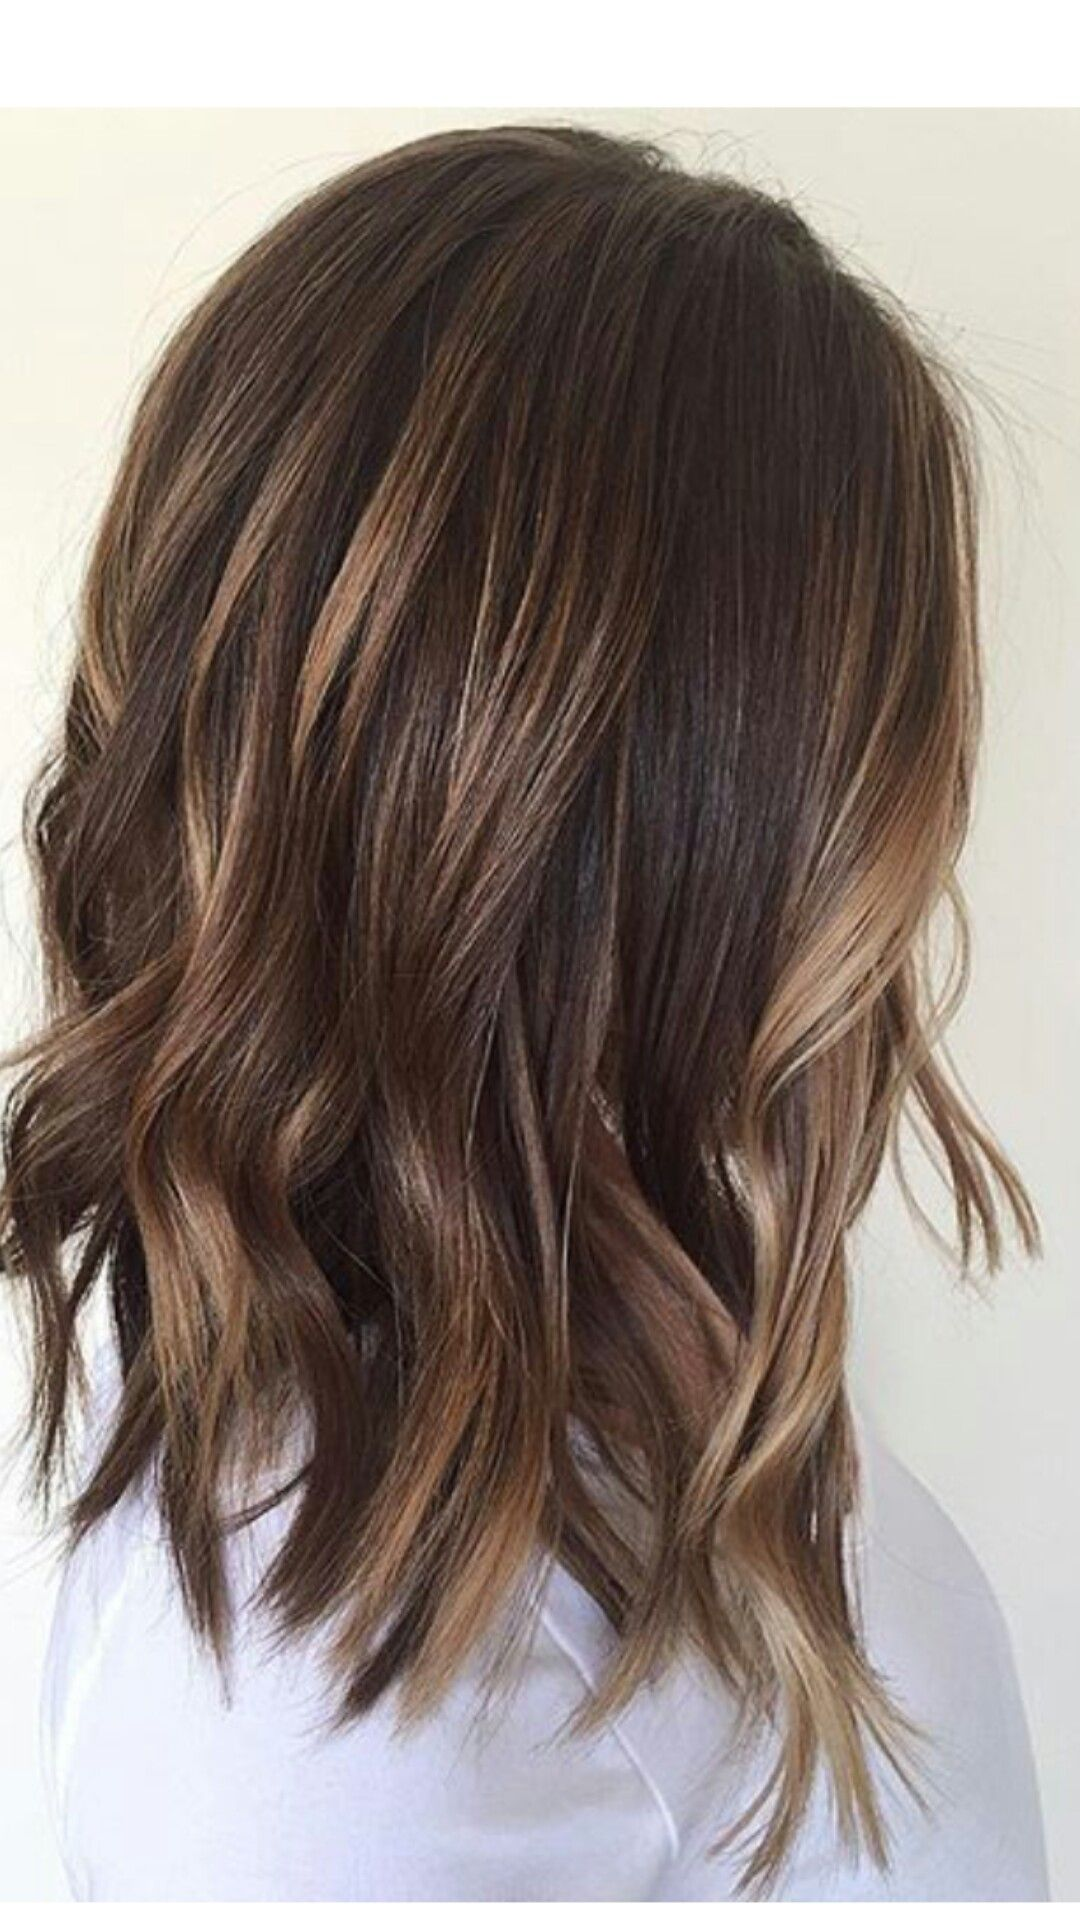 Pin by ali herman on hairstyles pinterest brunette hairstyles